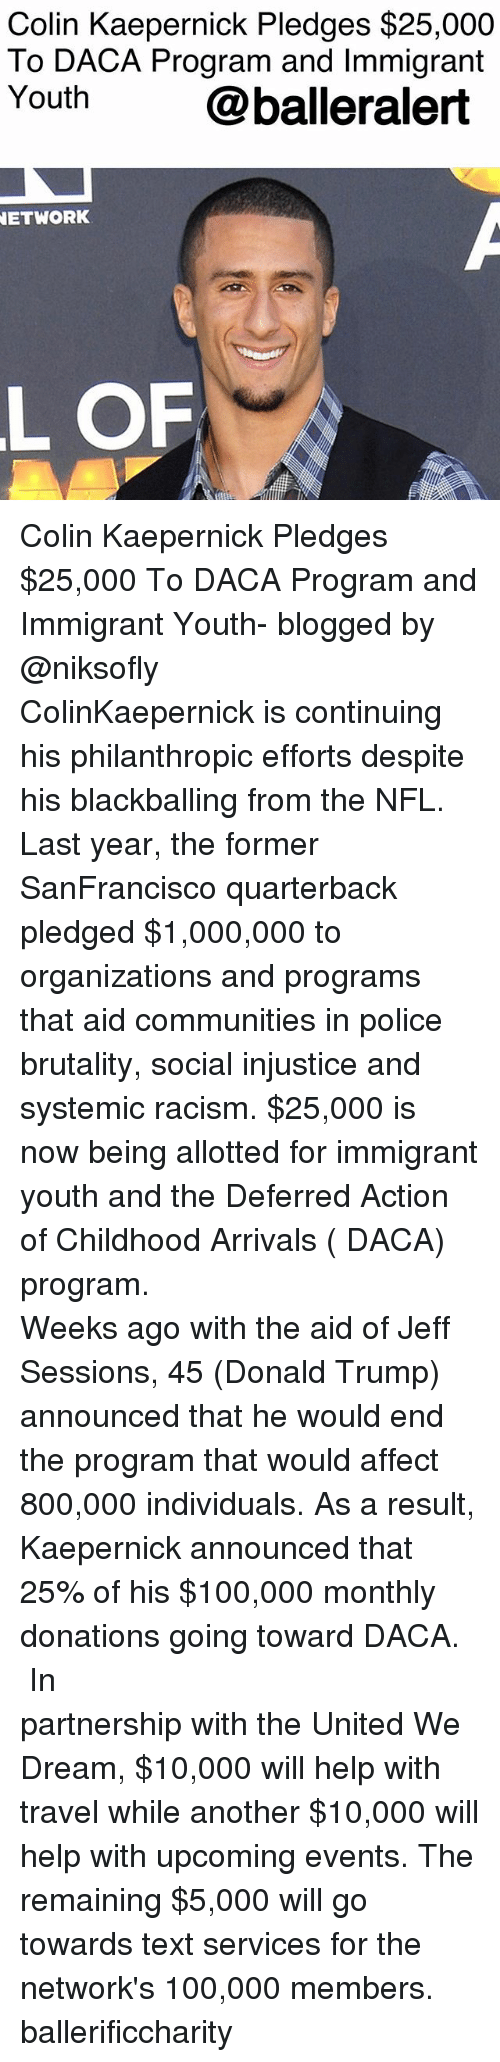 Anaconda, Colin Kaepernick, and Donald Trump: Colin Kaepernick Pledges $25,000  To DACA Program and Immigrant  Youth@balleralert  ETWORK  L OF Colin Kaepernick Pledges $25,000 To DACA Program and Immigrant Youth- blogged by @niksofly ⠀⠀⠀⠀⠀⠀⠀⠀⠀⠀⠀⠀⠀⠀⠀⠀⠀⠀⠀⠀⠀⠀⠀⠀⠀⠀⠀⠀⠀⠀⠀⠀⠀⠀ ColinKaepernick is continuing his philanthropic efforts despite his blackballing from the NFL. Last year, the former SanFrancisco quarterback pledged $1,000,000 to organizations and programs that aid communities in police brutality, social injustice and systemic racism. $25,000 is now being allotted for immigrant youth and the Deferred Action of Childhood Arrivals ( DACA) program. ⠀⠀⠀⠀⠀⠀⠀⠀⠀⠀⠀⠀⠀⠀⠀⠀⠀⠀⠀⠀⠀⠀⠀⠀⠀⠀⠀⠀⠀⠀⠀⠀⠀⠀ Weeks ago with the aid of Jeff Sessions, 45 (Donald Trump) announced that he would end the program that would affect 800,000 individuals. As a result, Kaepernick announced that 25% of his $100,000 monthly donations going toward DACA. ⠀⠀⠀⠀⠀⠀⠀⠀⠀⠀⠀⠀⠀⠀⠀⠀⠀⠀⠀⠀⠀⠀⠀⠀⠀⠀⠀⠀⠀⠀⠀⠀⠀⠀ In partnership with the United We Dream, $10,000 will help with travel while another $10,000 will help with upcoming events. The remaining $5,000 will go towards text services for the network's 100,000 members. ballerificcharity